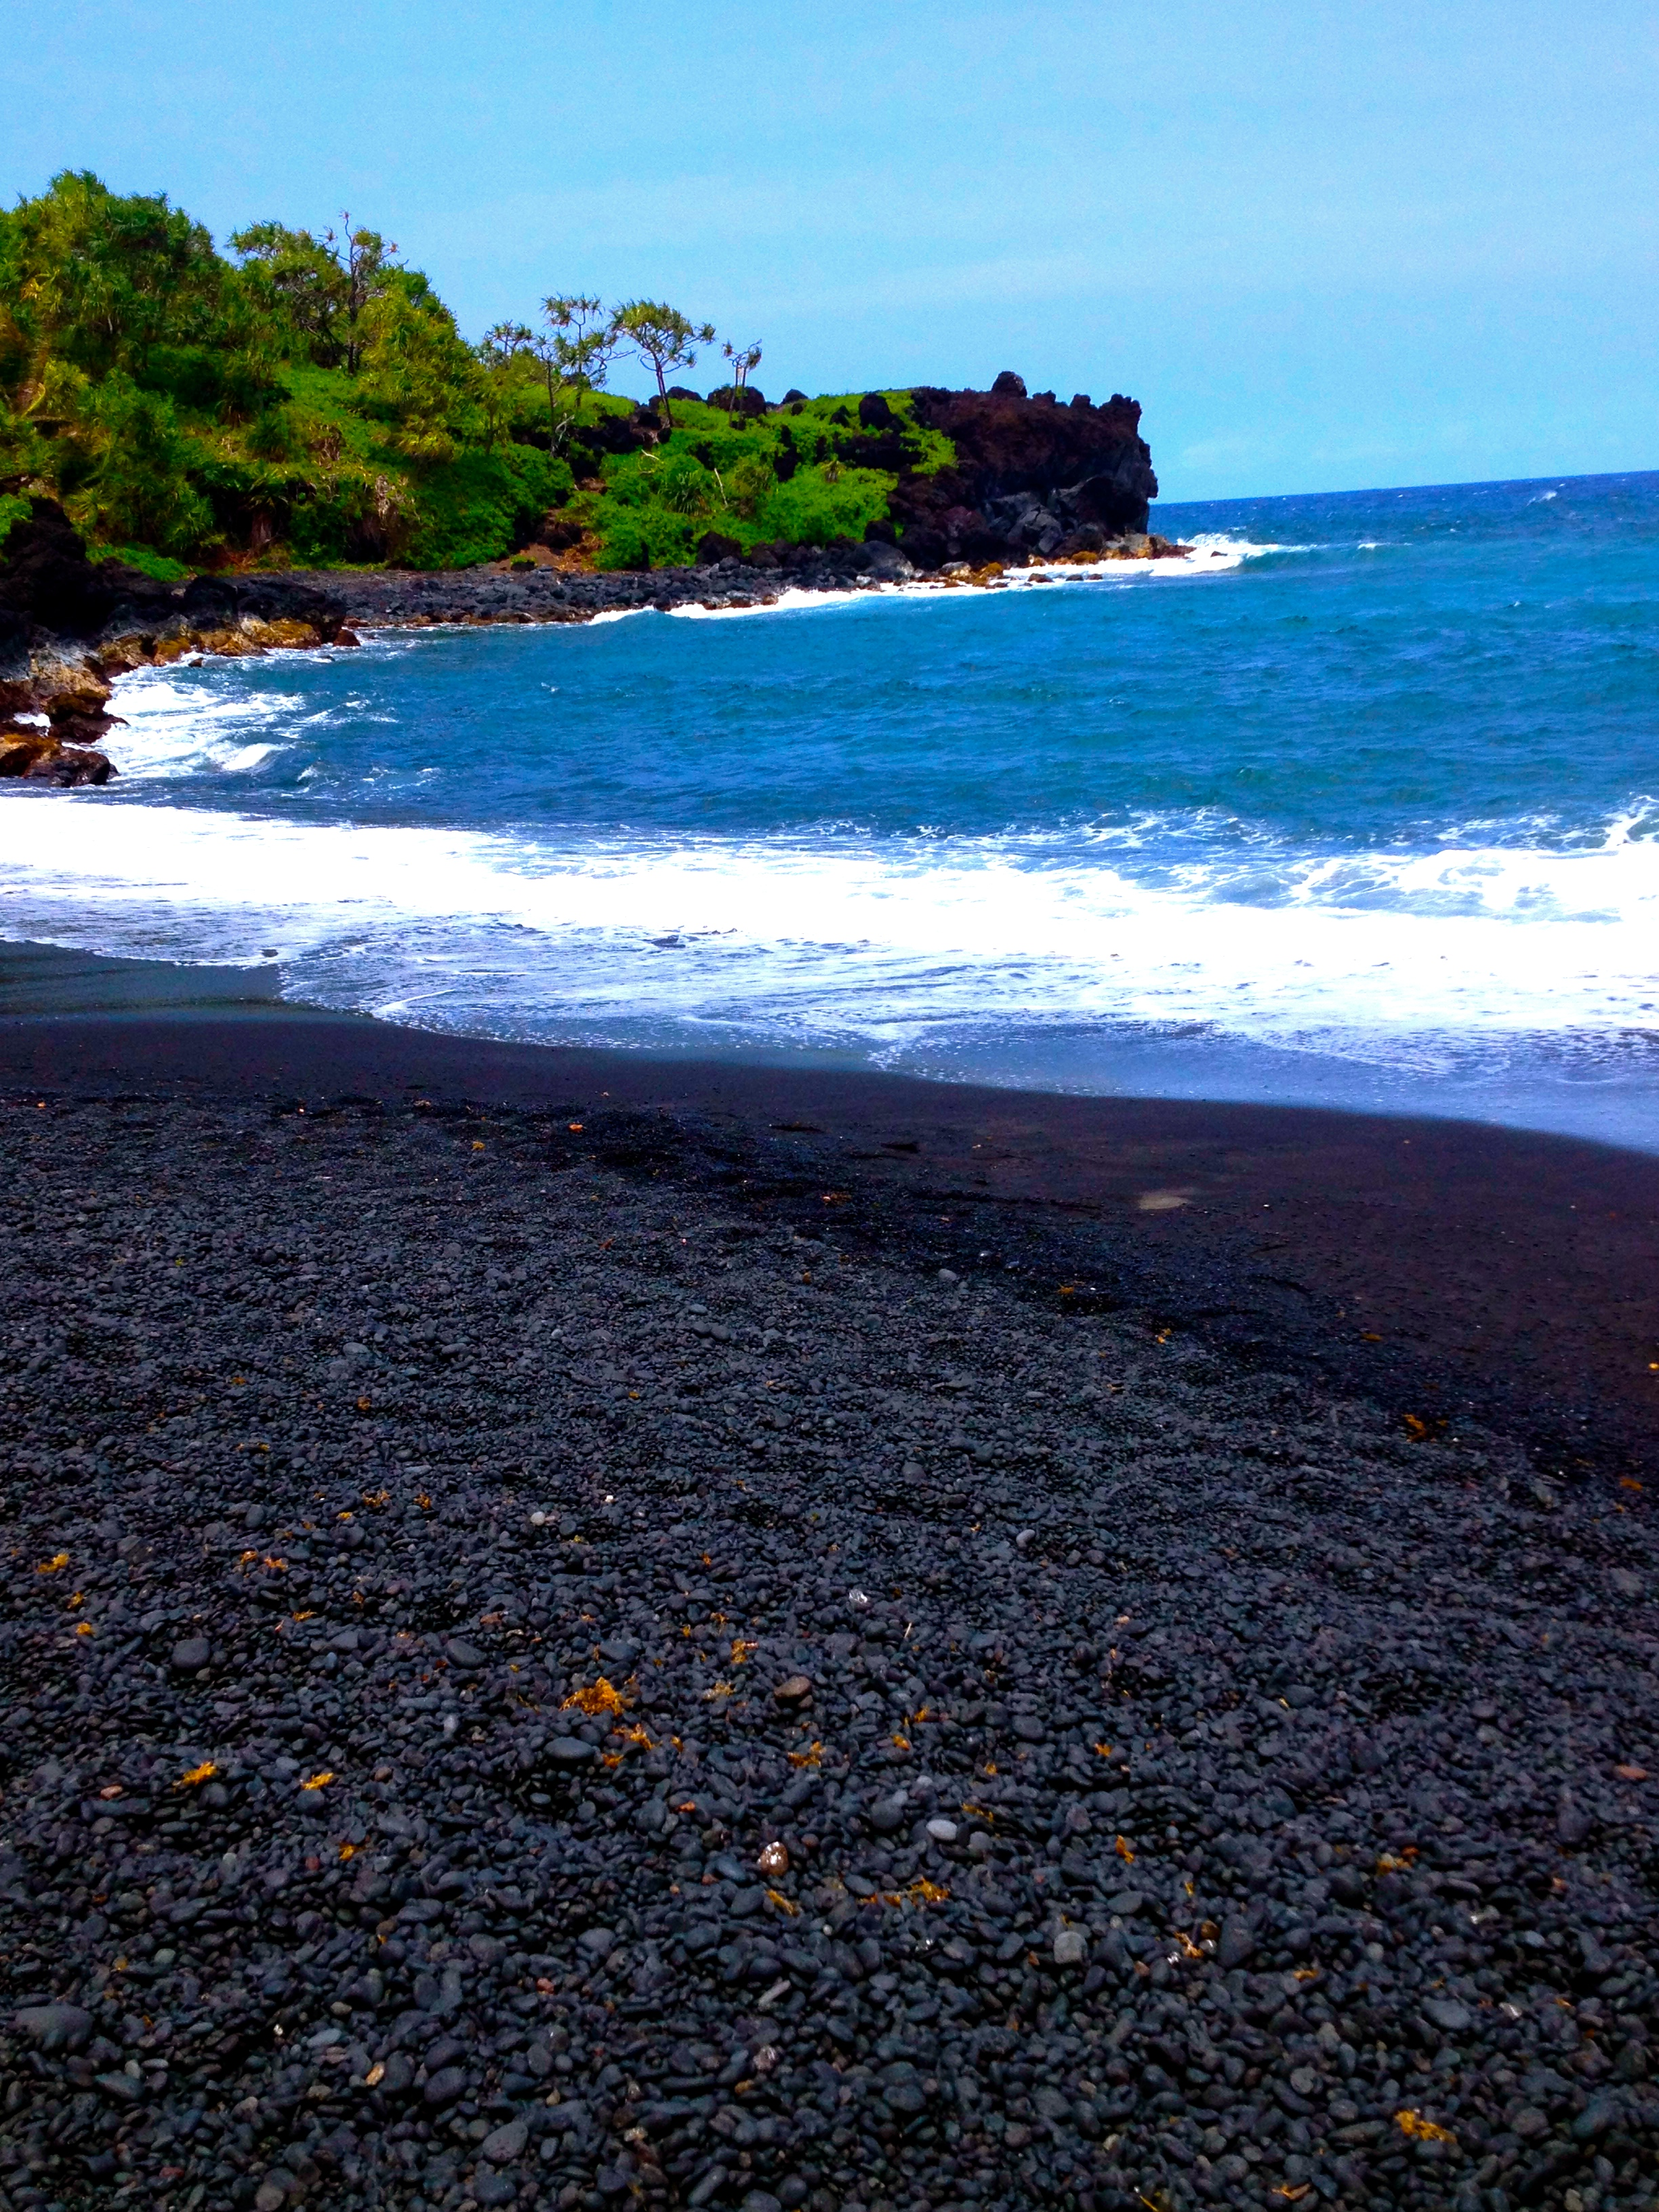 9 Things That Make Maui Irresistible (In Photos)